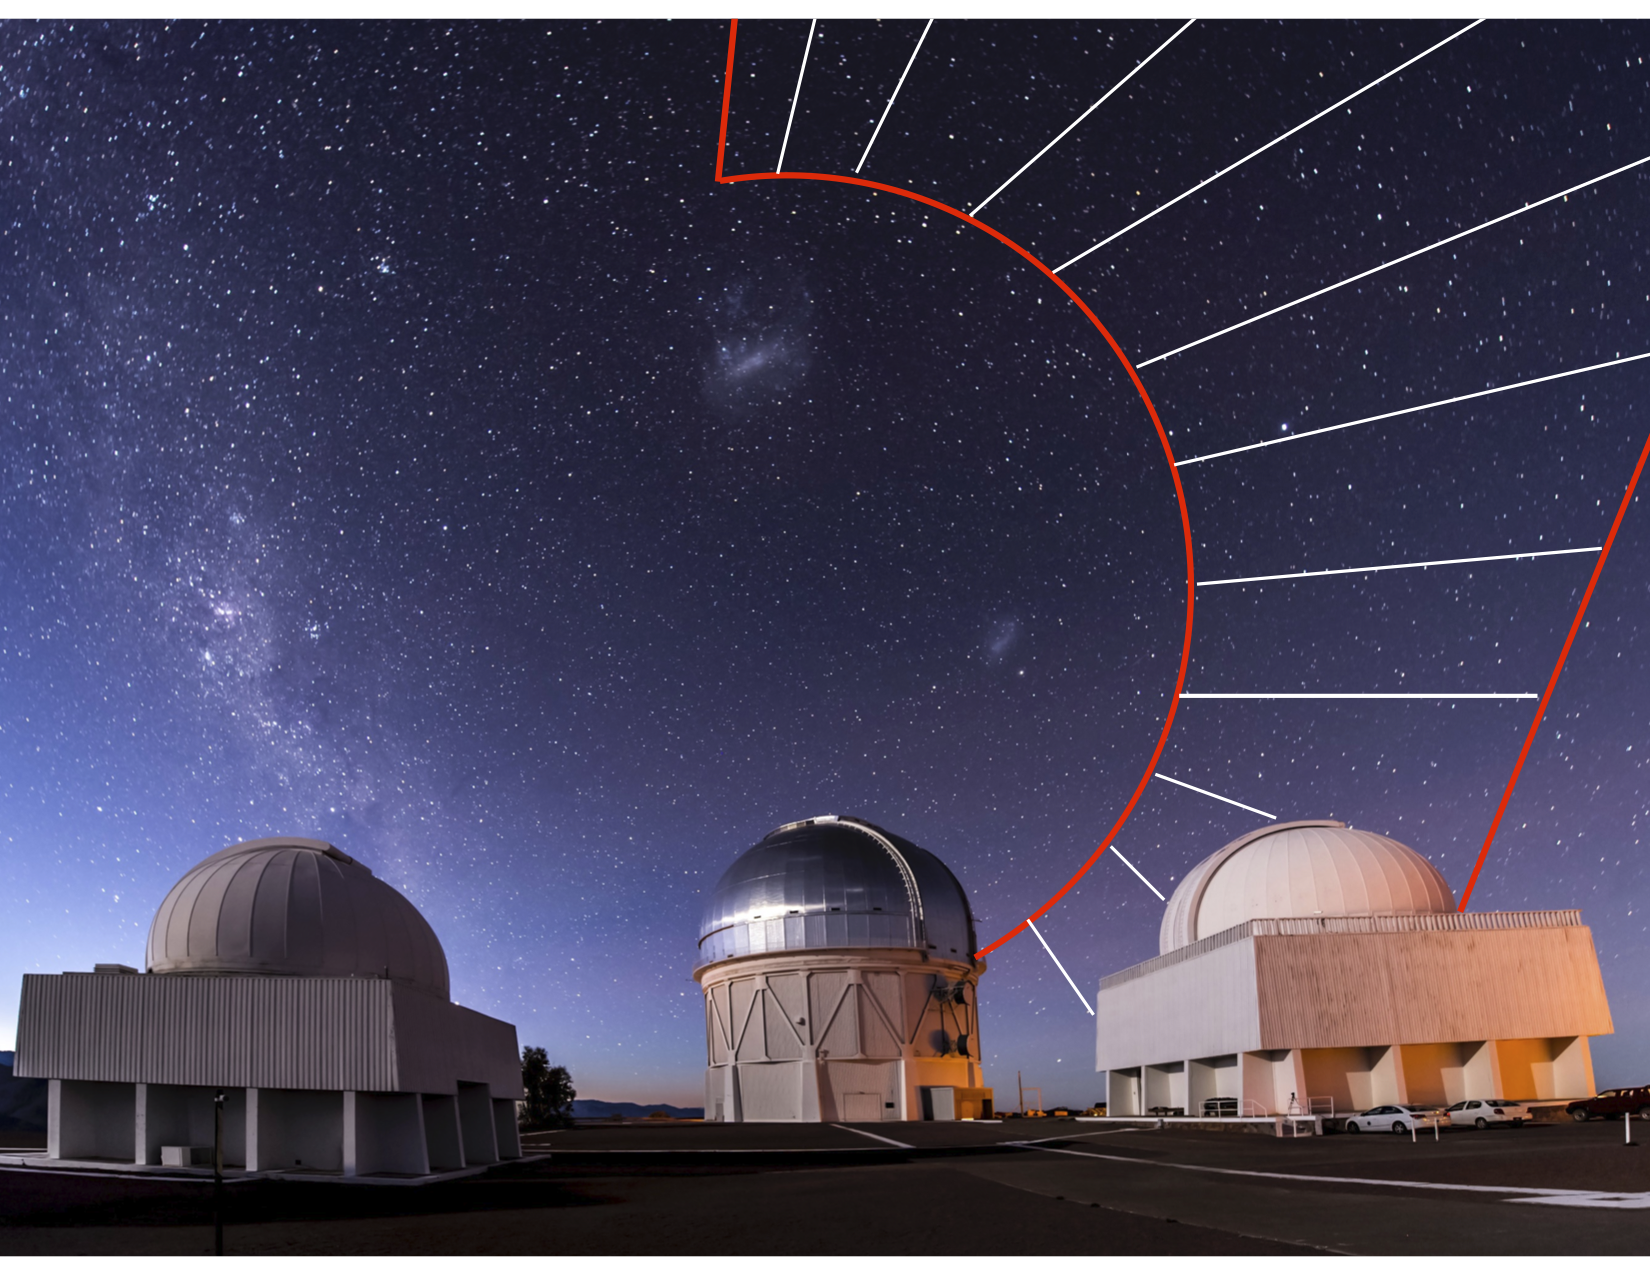 Over the course of 6 years, the Dark Energy Survey surveyed nearly one eighth of the sky. Image credit: Yuanyuan Zhang, The Dark Energy Survey